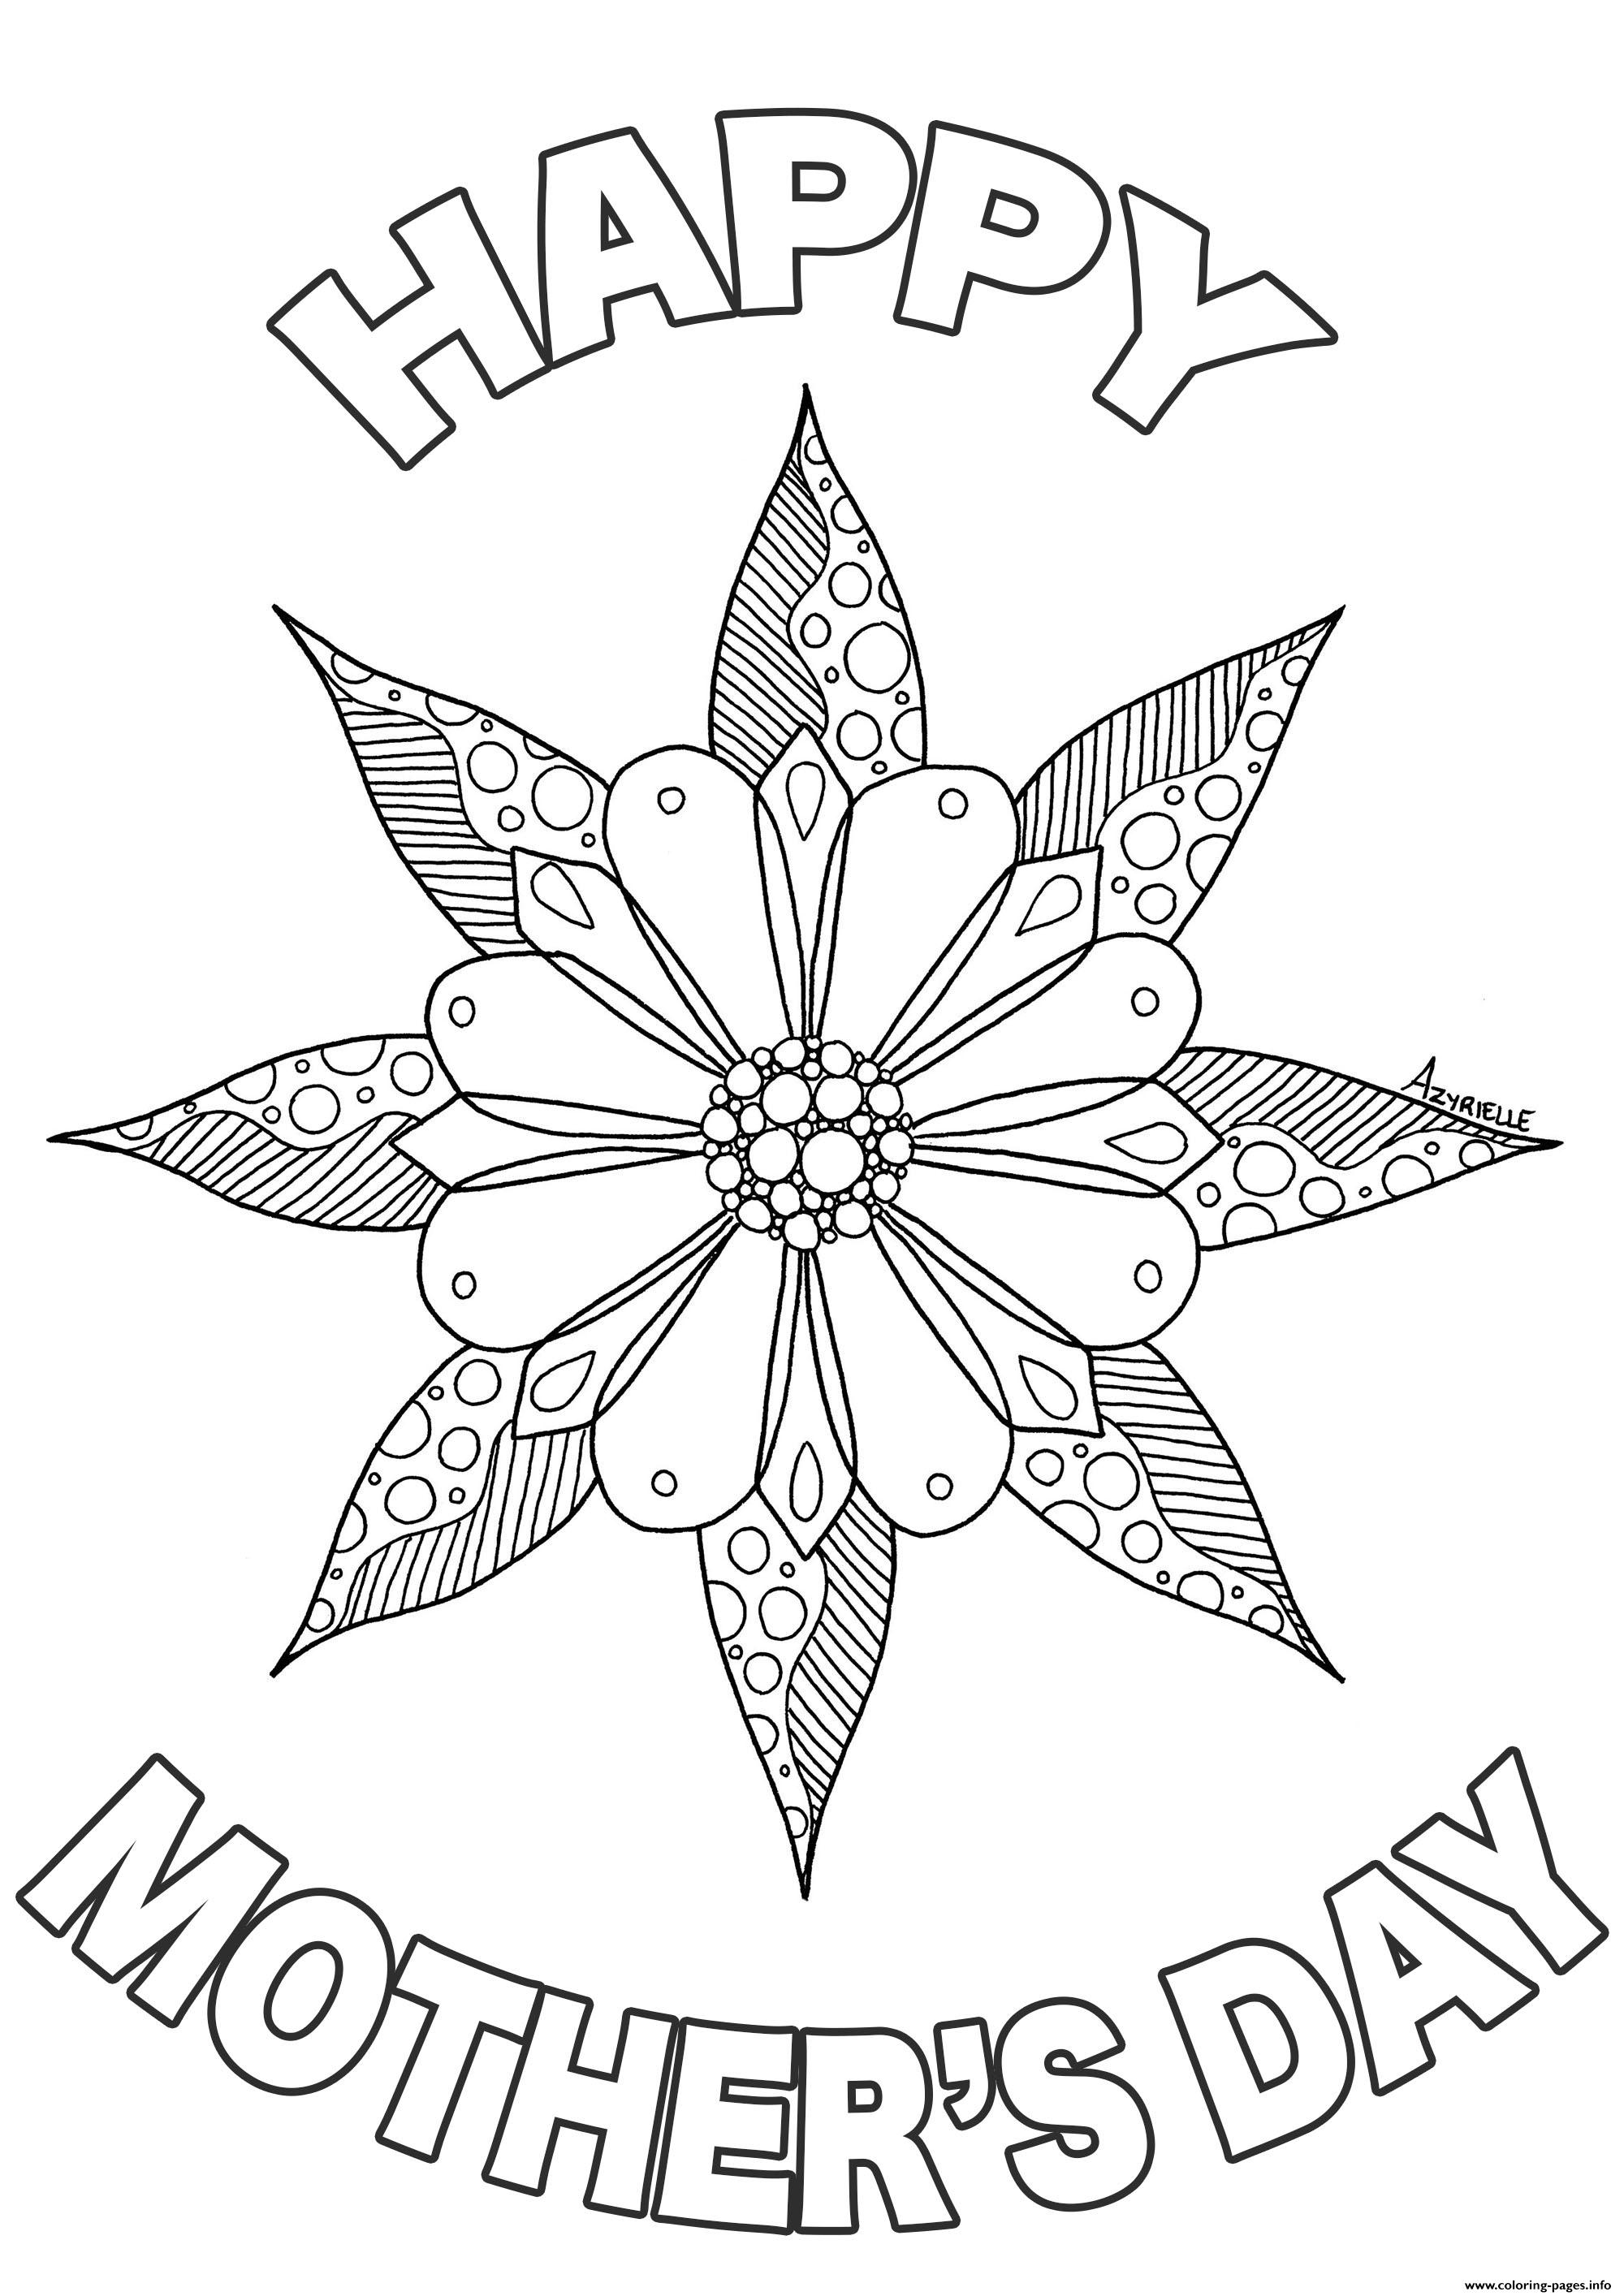 Mothers Day By Azyrielle coloring pages